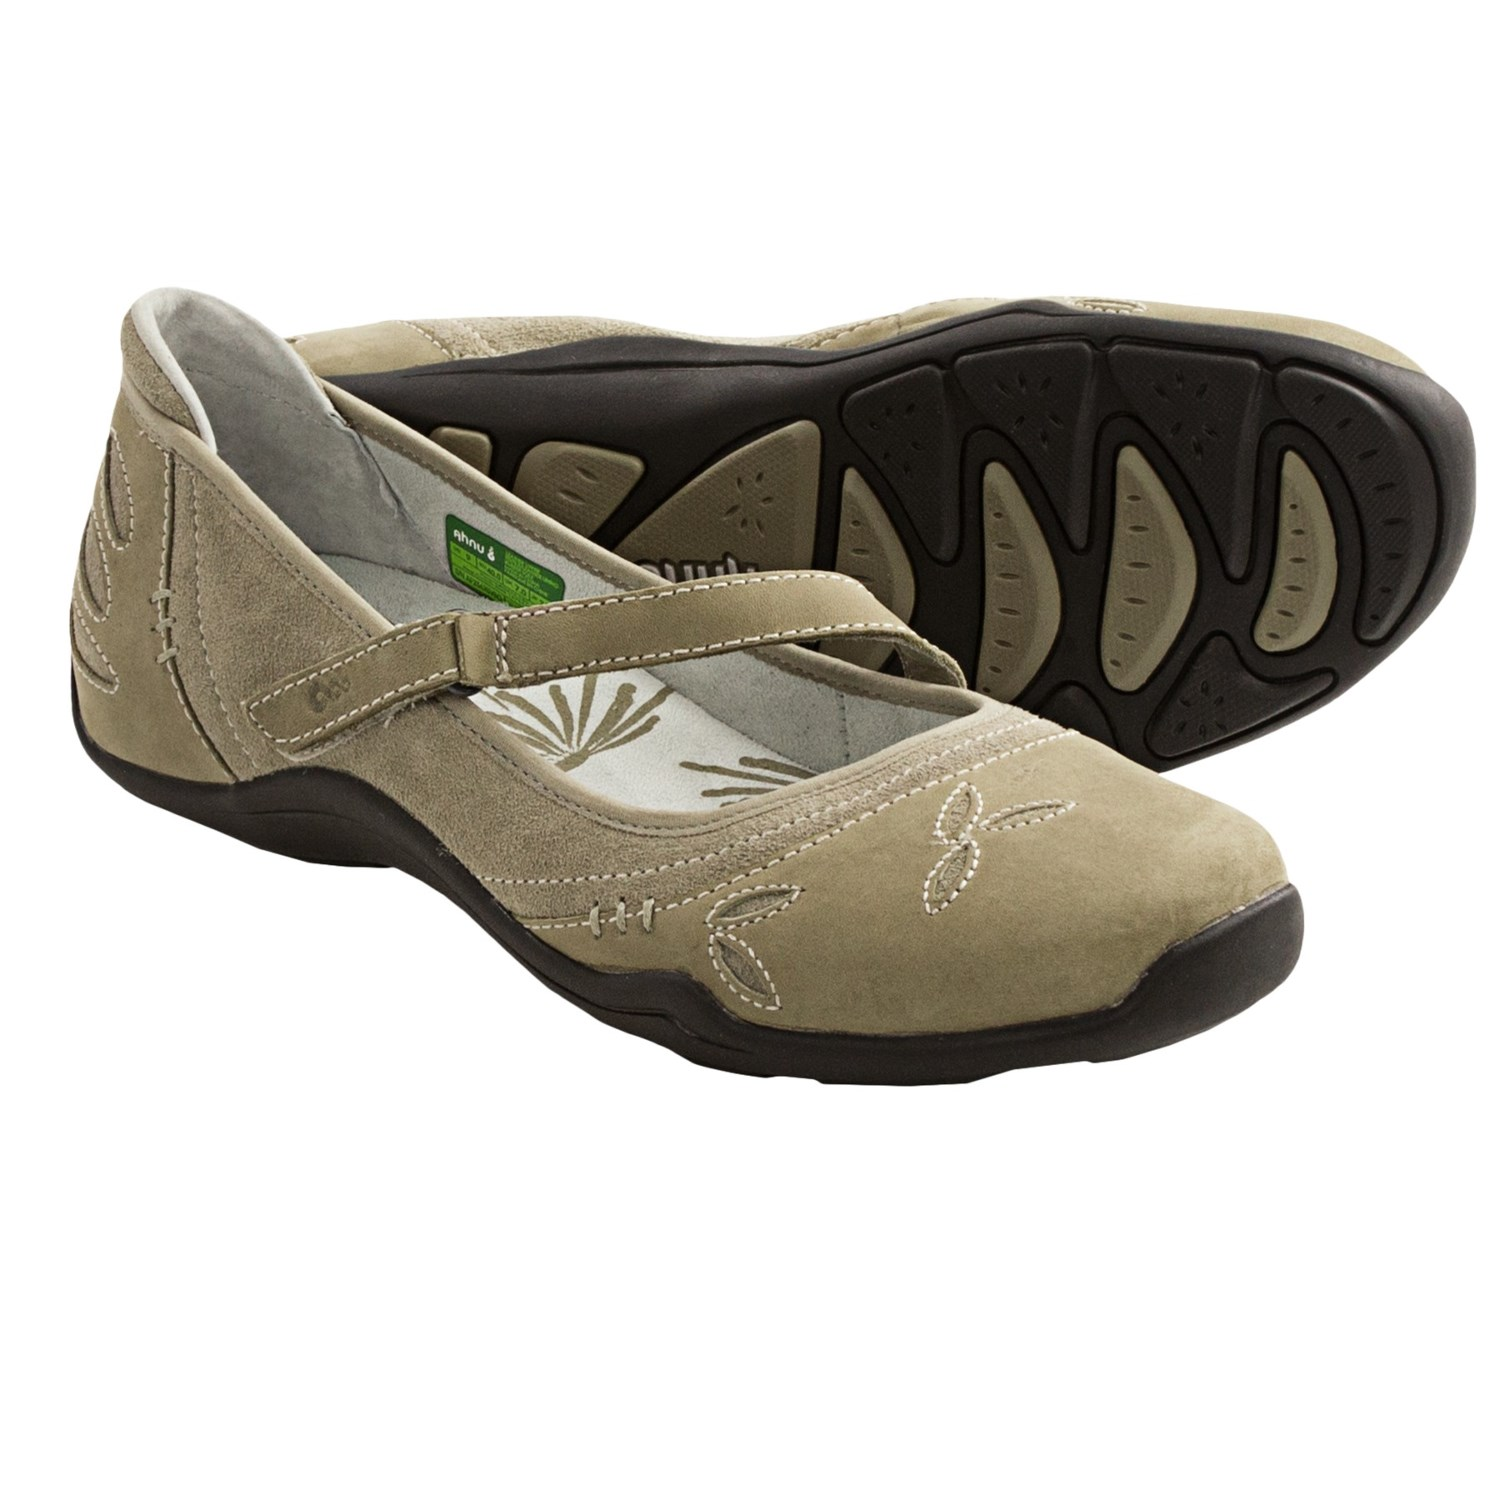 Ahnu Emery Shoes - Leather (For Women) - Save 29